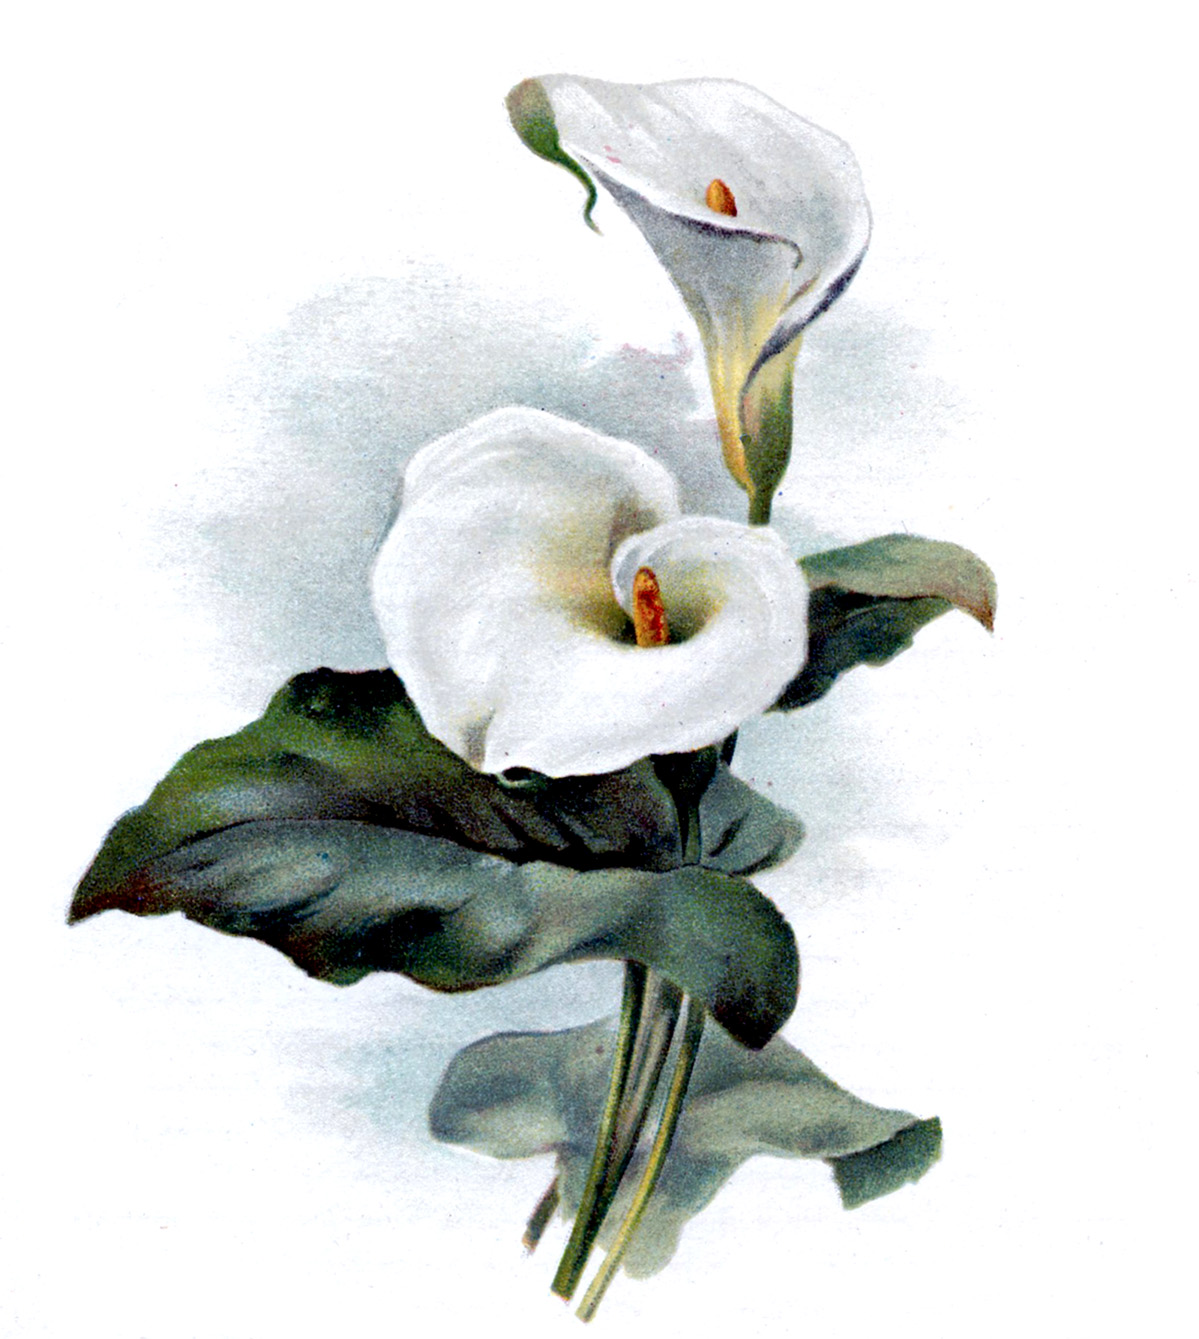 Vintage Botanical Graphic   Cala Lily   The Graphics Fairy